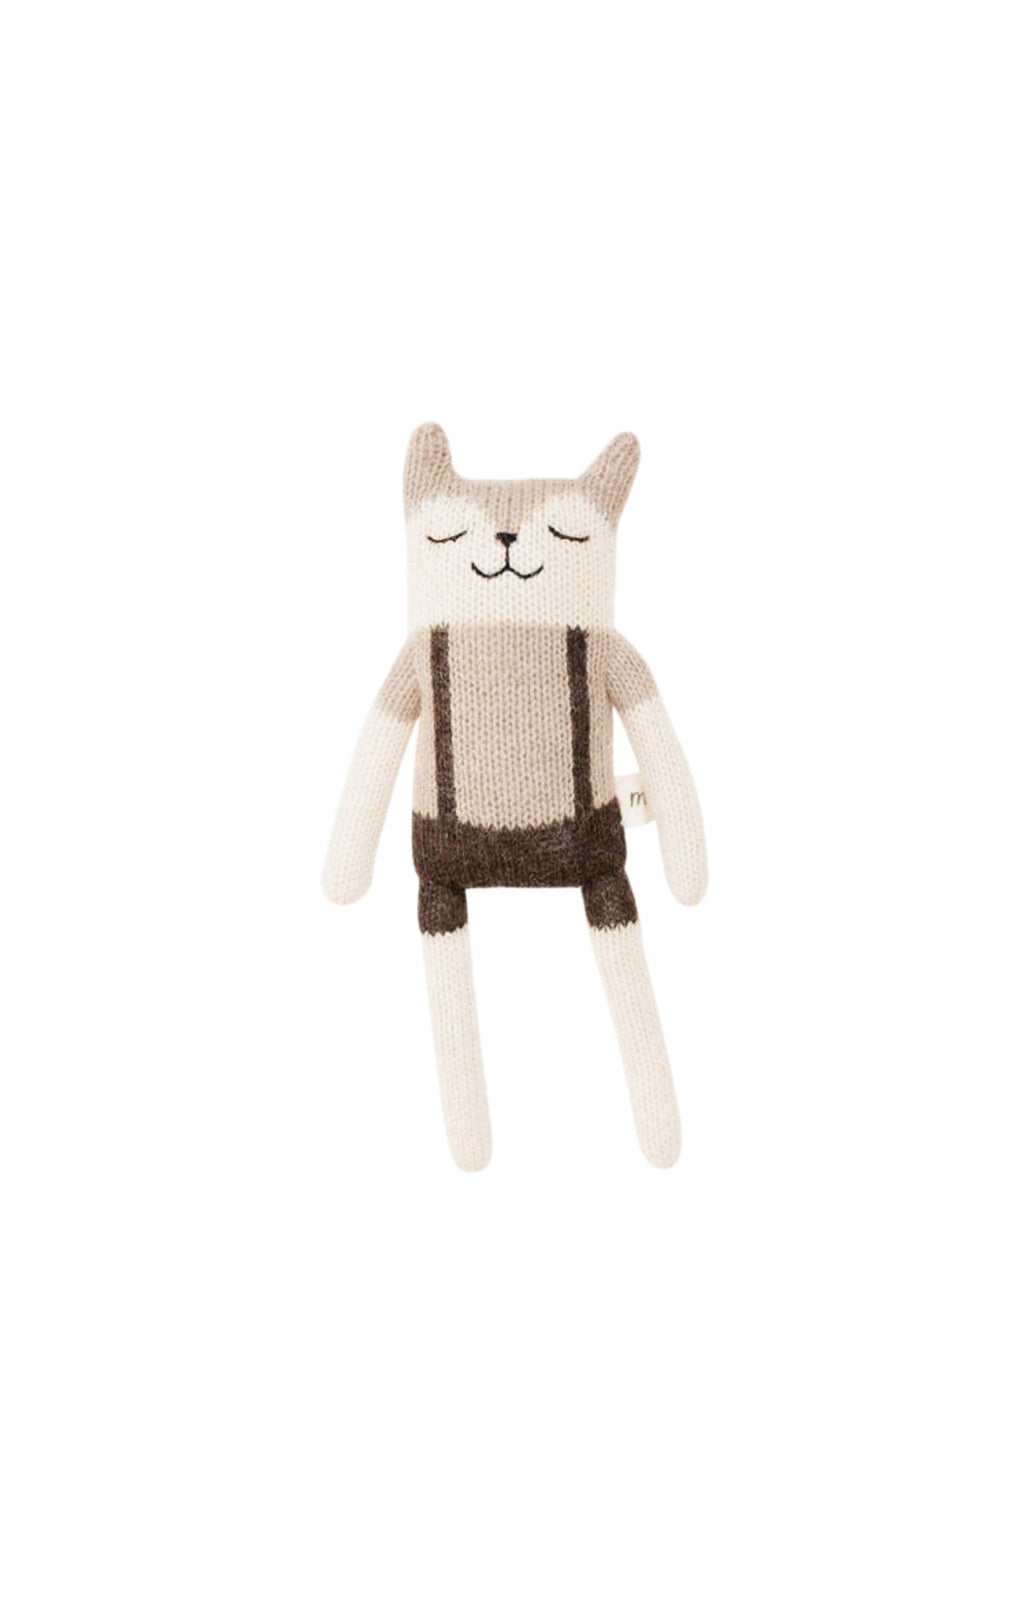 Main Sauvage fawn knit toy with overalls (PRE-ORDER NOV) - Hello Little Birdie